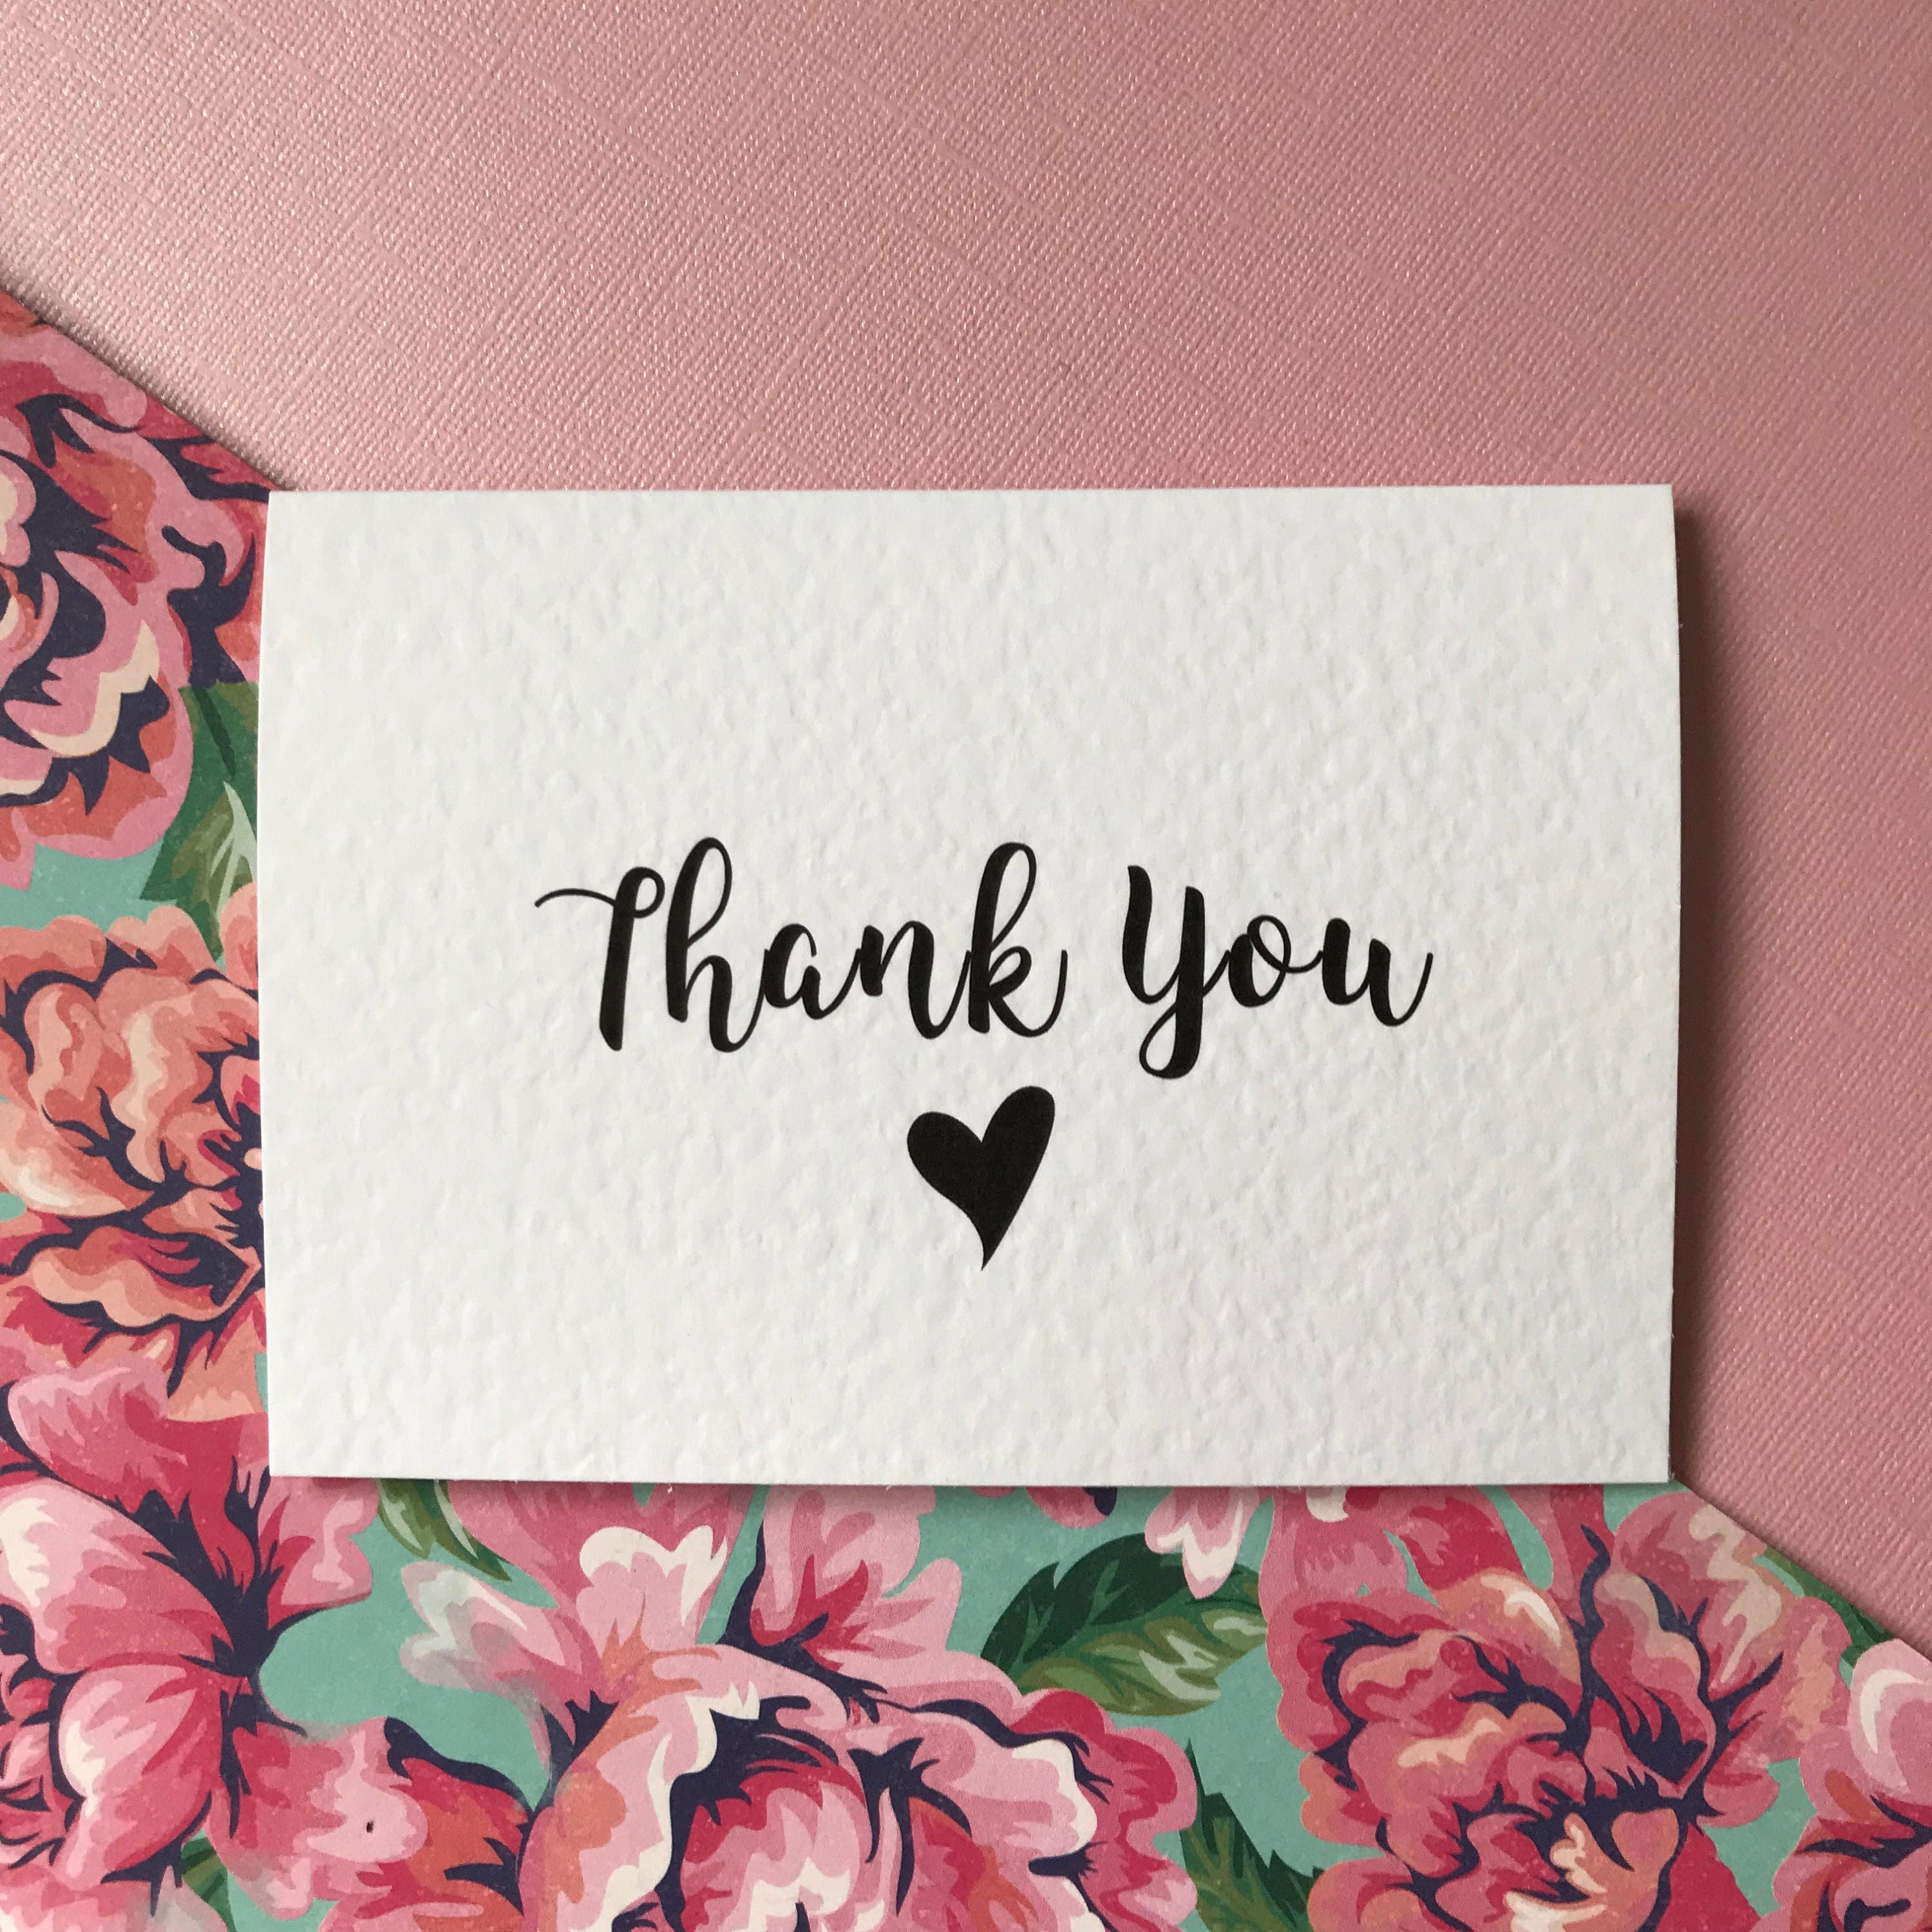 Thank You Card Black/Rose Gold Thank You Card Set/Gift